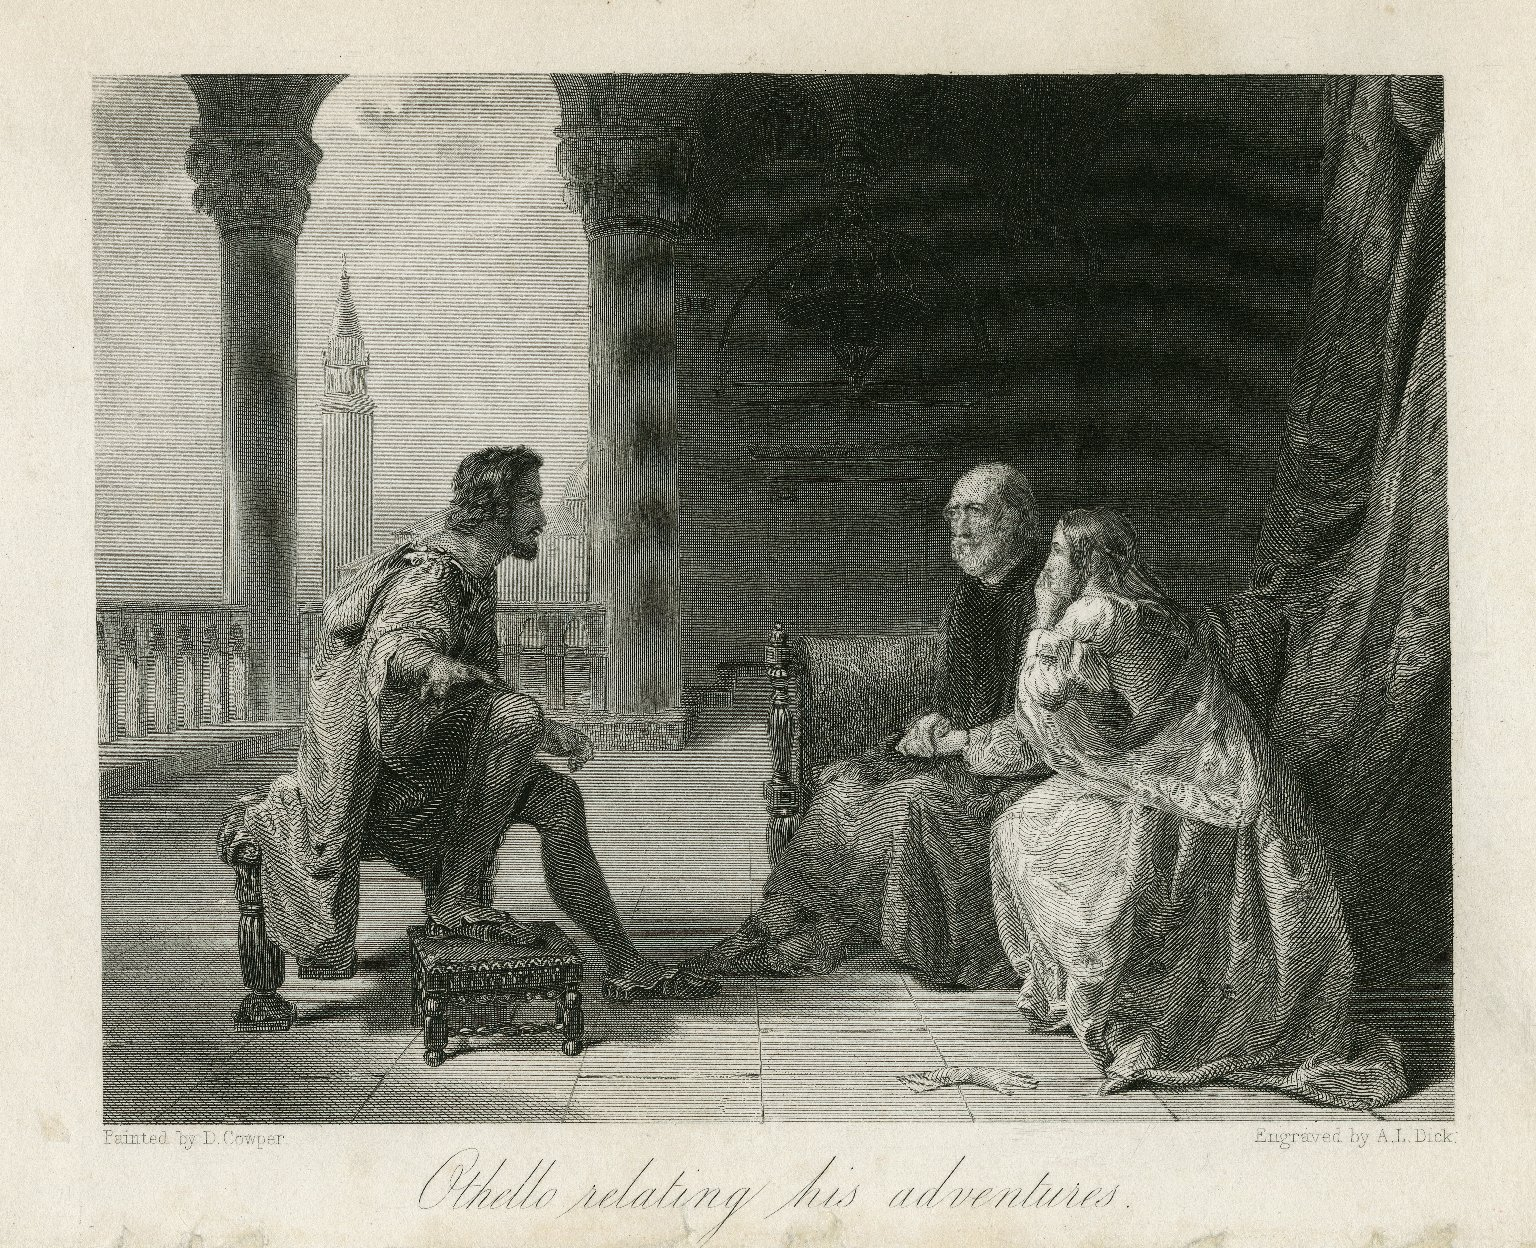 Othello relating his adventures [Othello, act I, sc. 3] [graphic] / painted by D. Cowper ; engraved by A.L. Dick.